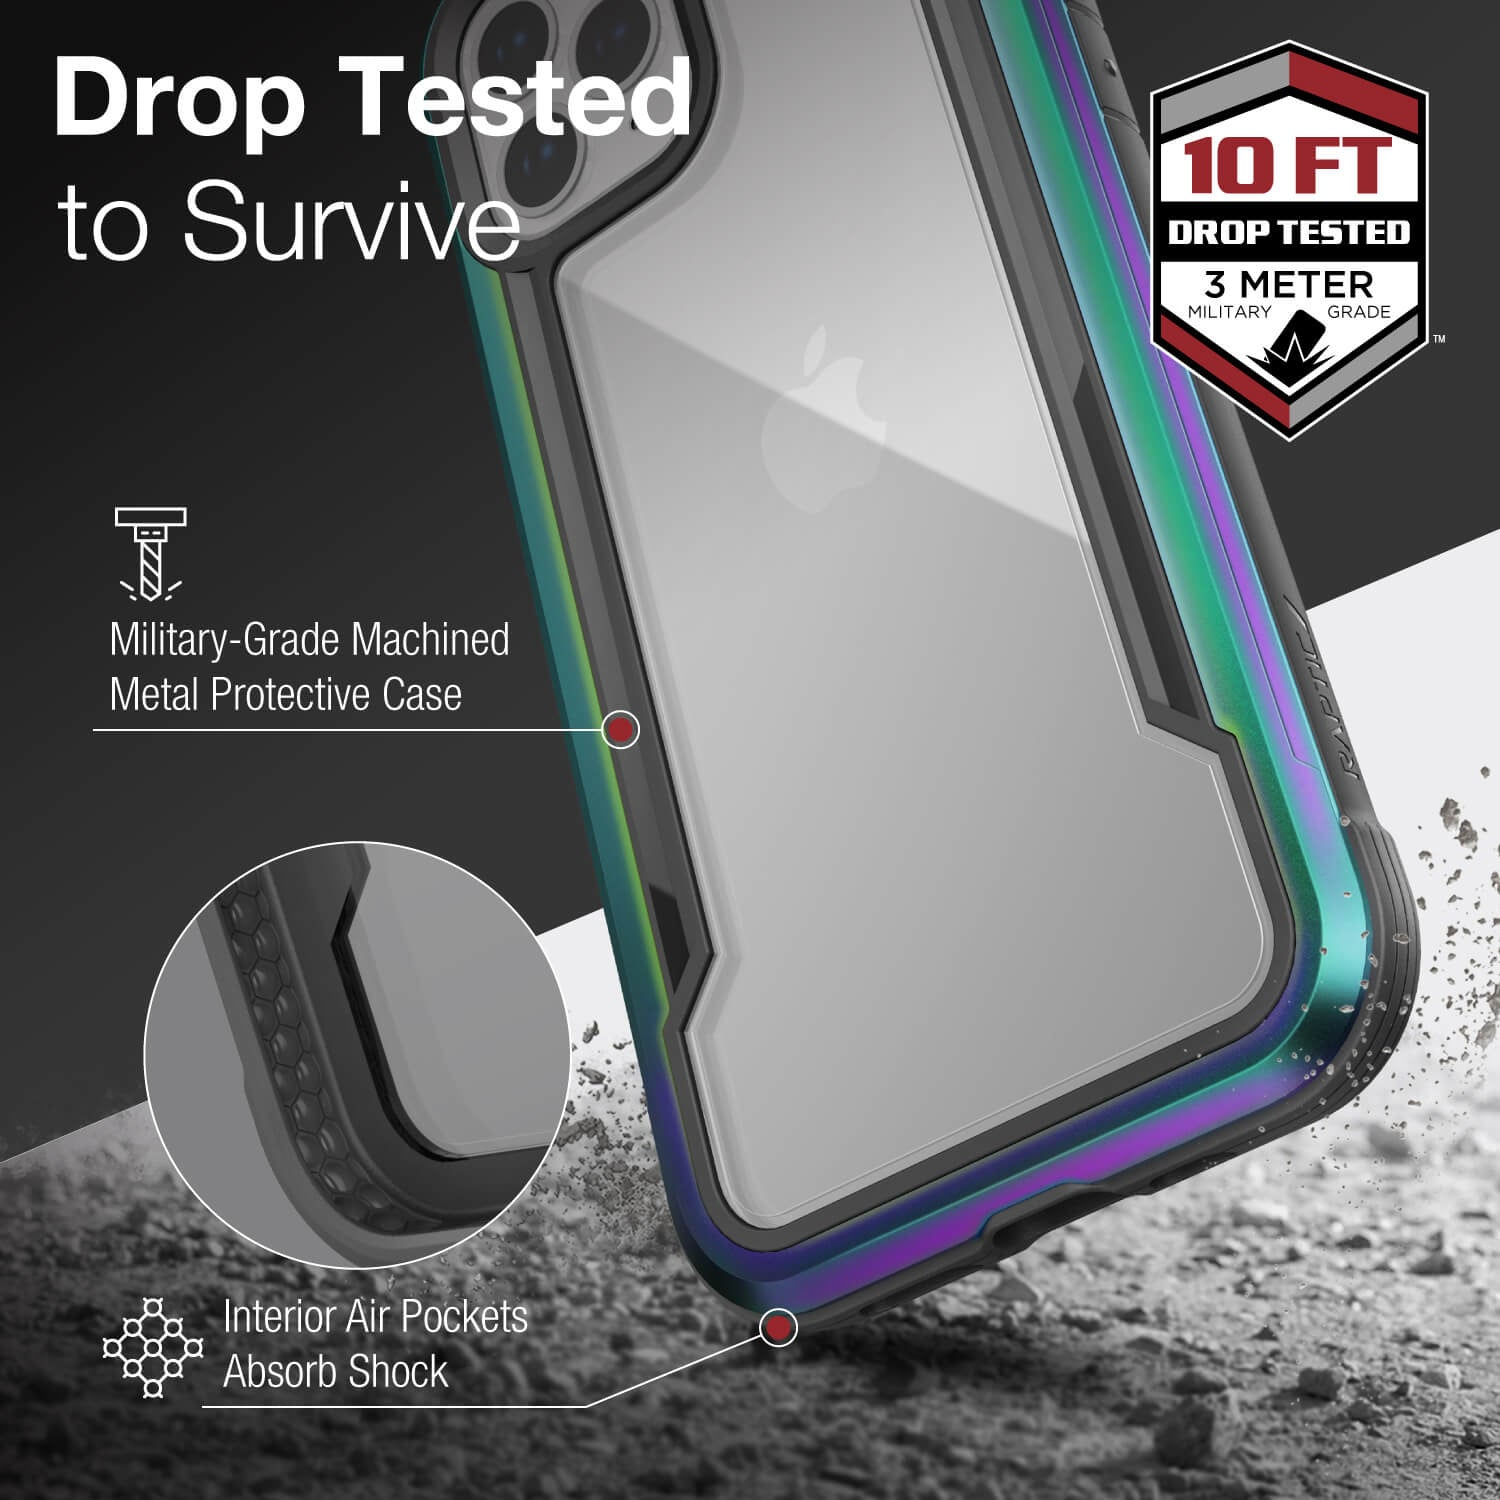 Infographic showing an iPhone 12 in an Iridescent coloured Raptic Shield case that is tested to survive up to 3 metre drops